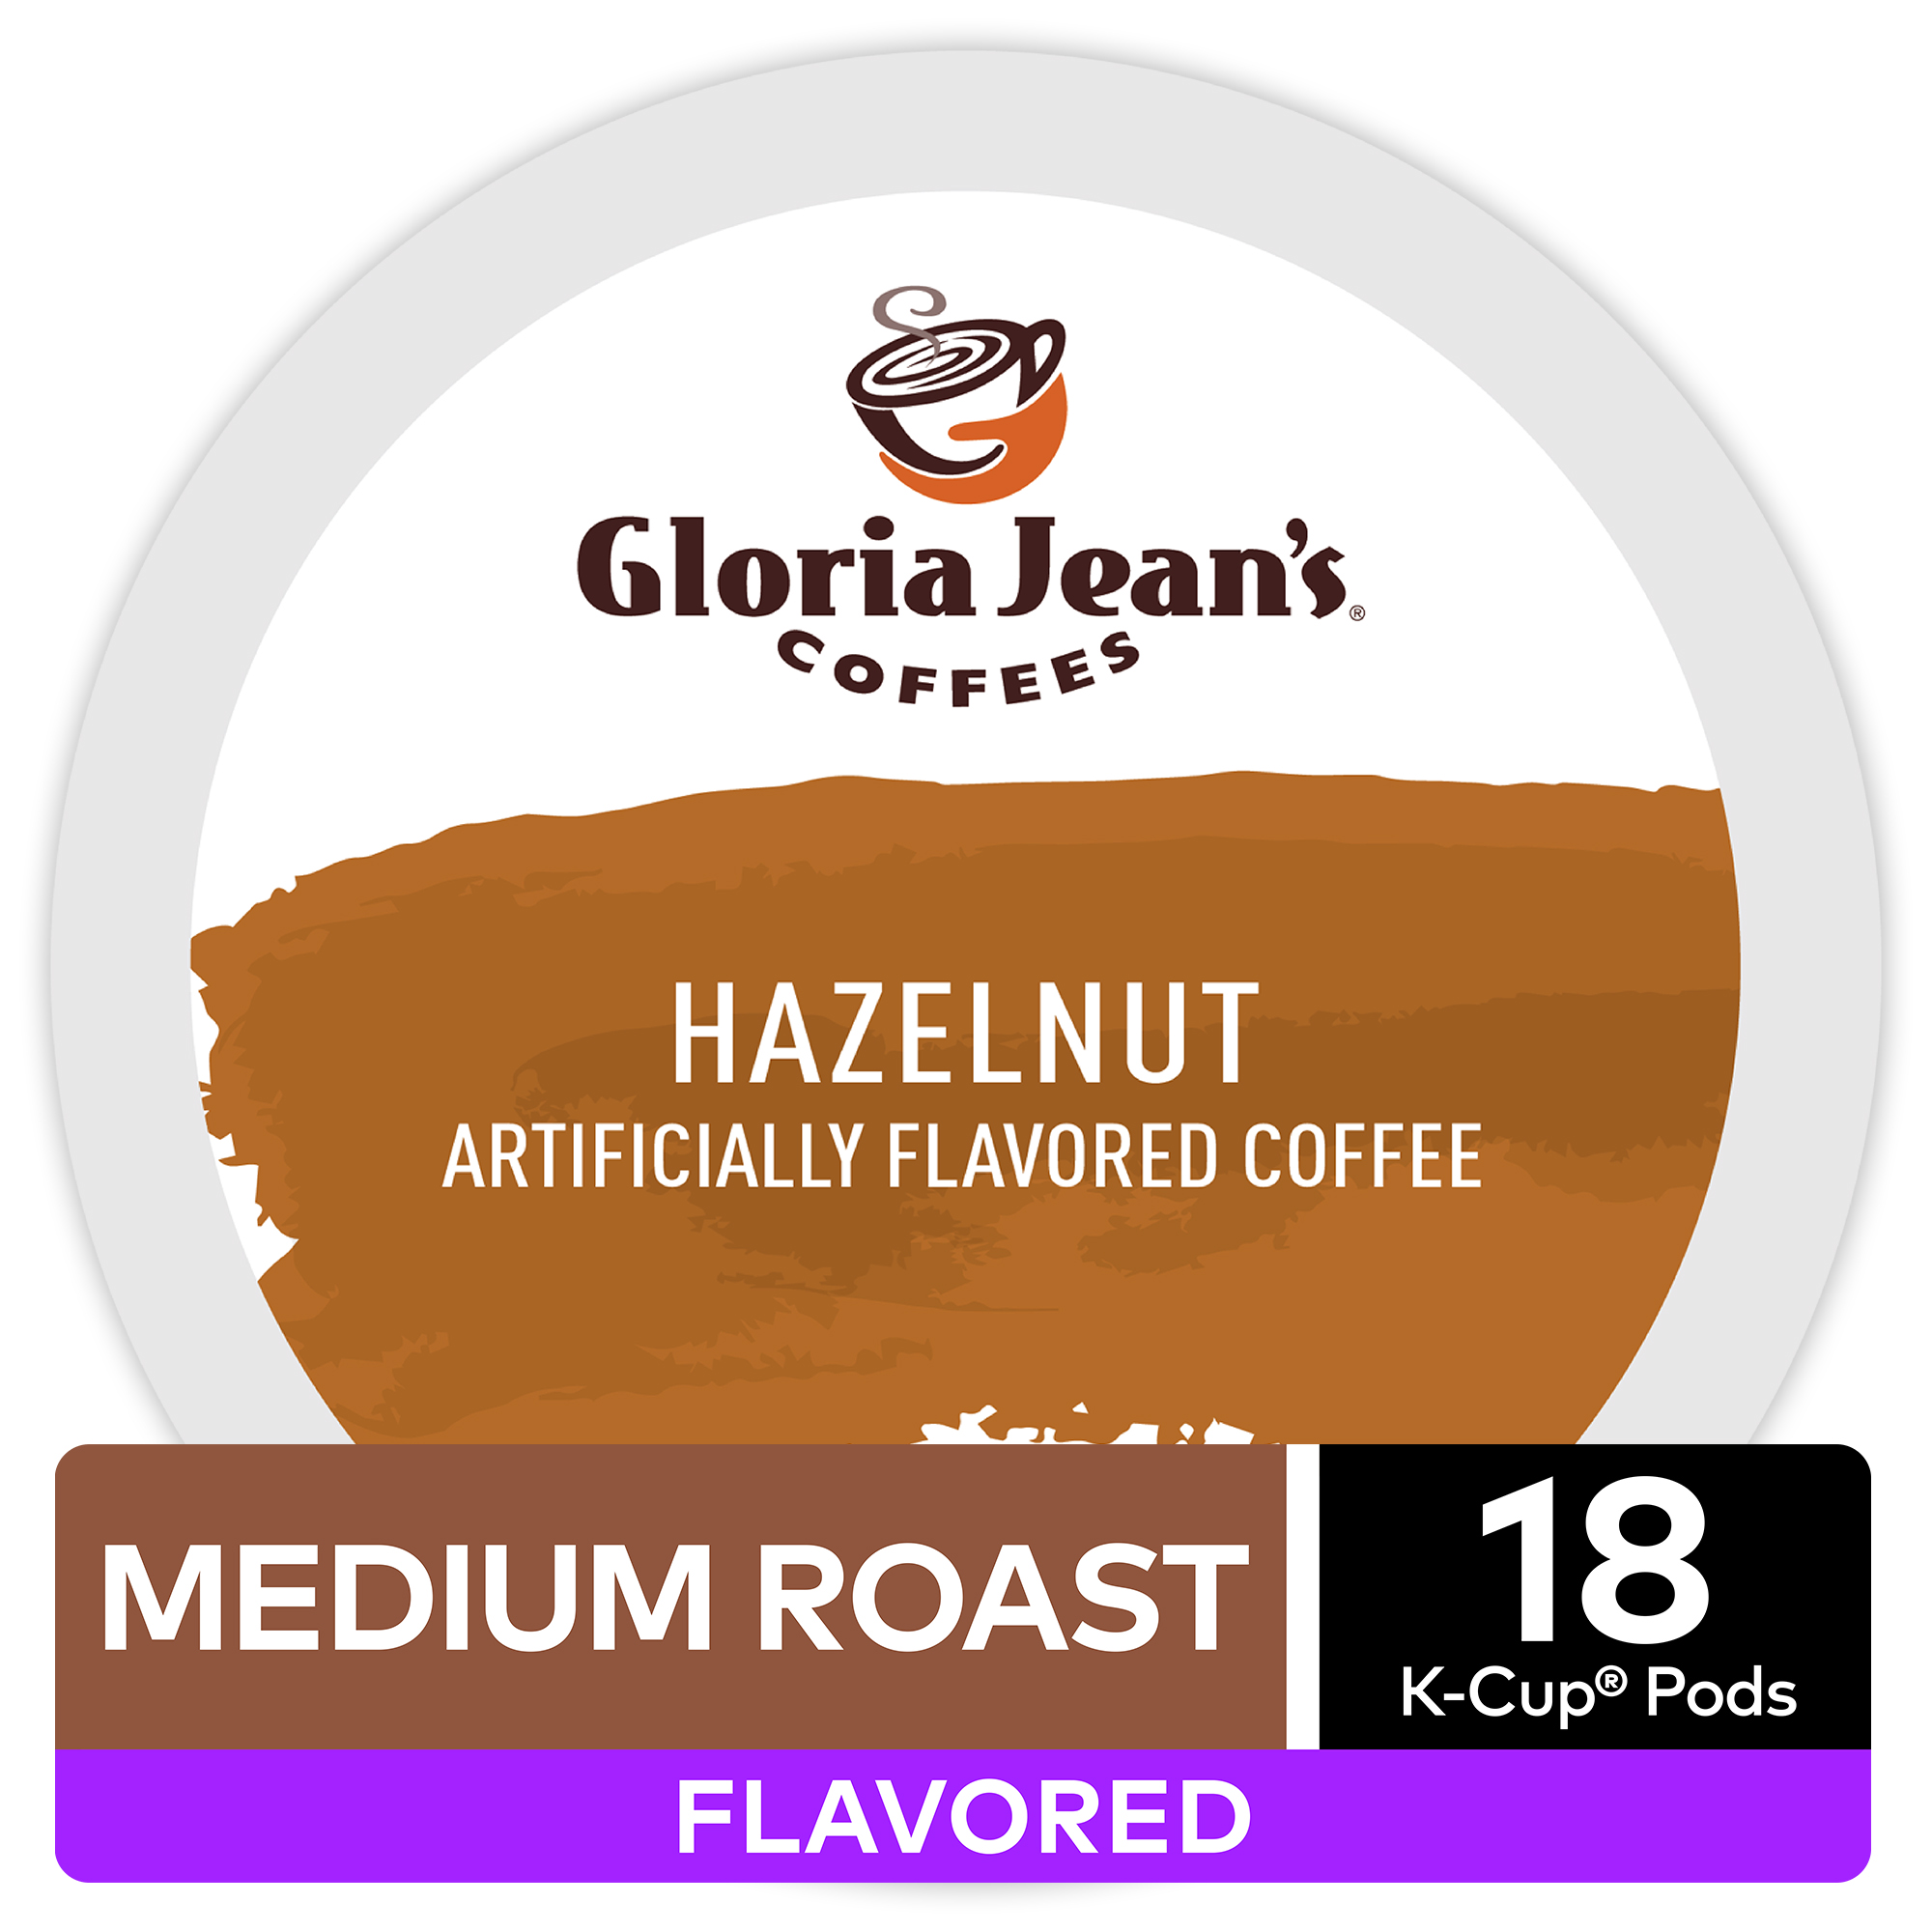 Gloria Jean's Coffee Hazelnut, Flavored Keurig K-Cup Pod, Medium Roast, 18 Ct